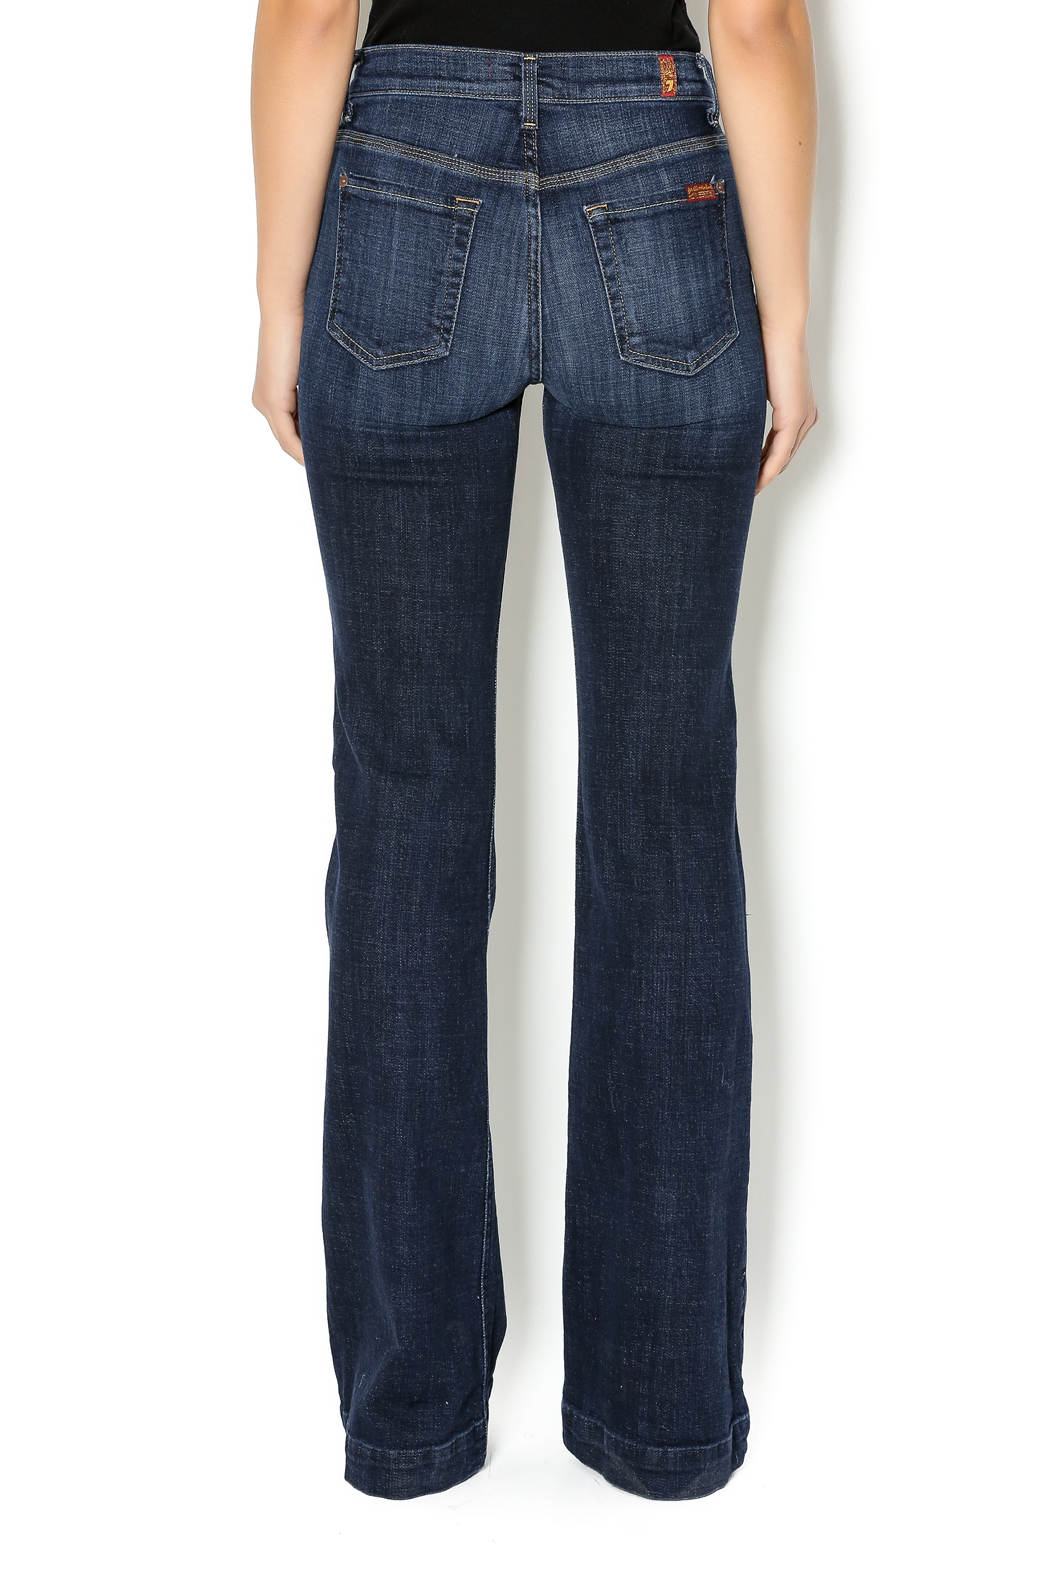 7 For all Mankind Ginger Wide Leg Trousers from Dallas by Hulla B ...